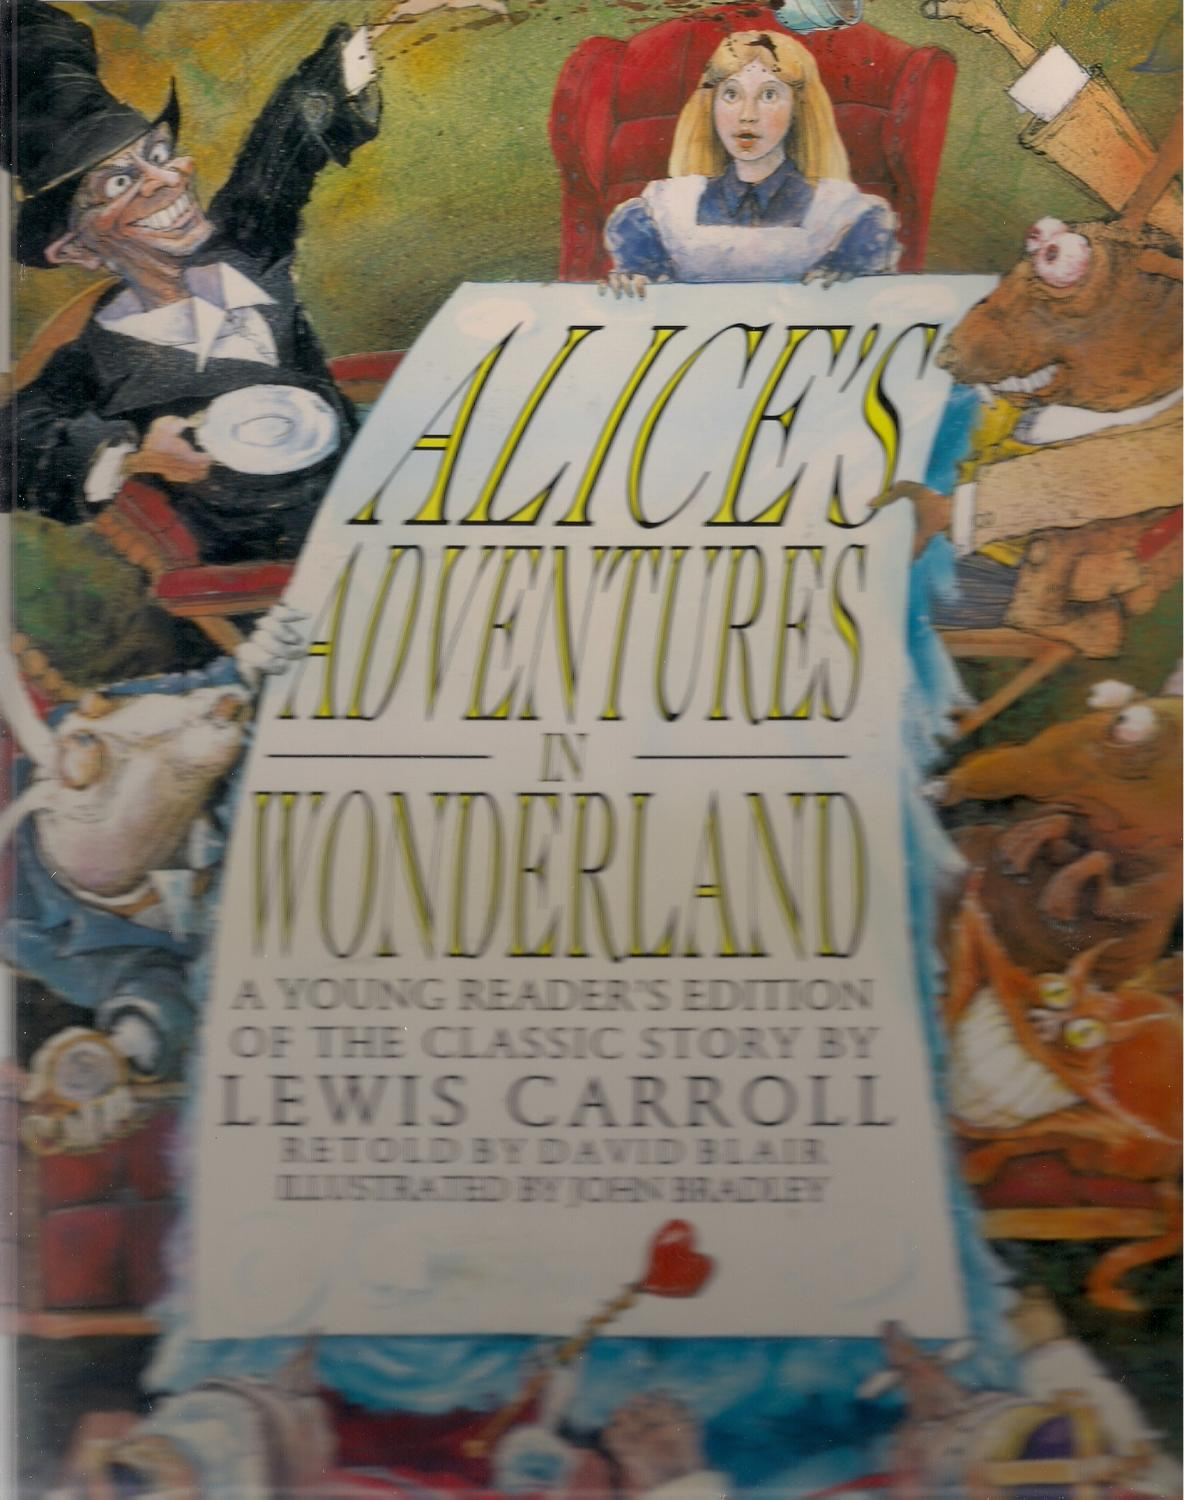 Alice's Adventure in Wonderland: A Young Reader's Edition of the Classic Story by Lewis Carroll - Carroll, Lewis; Blair, David